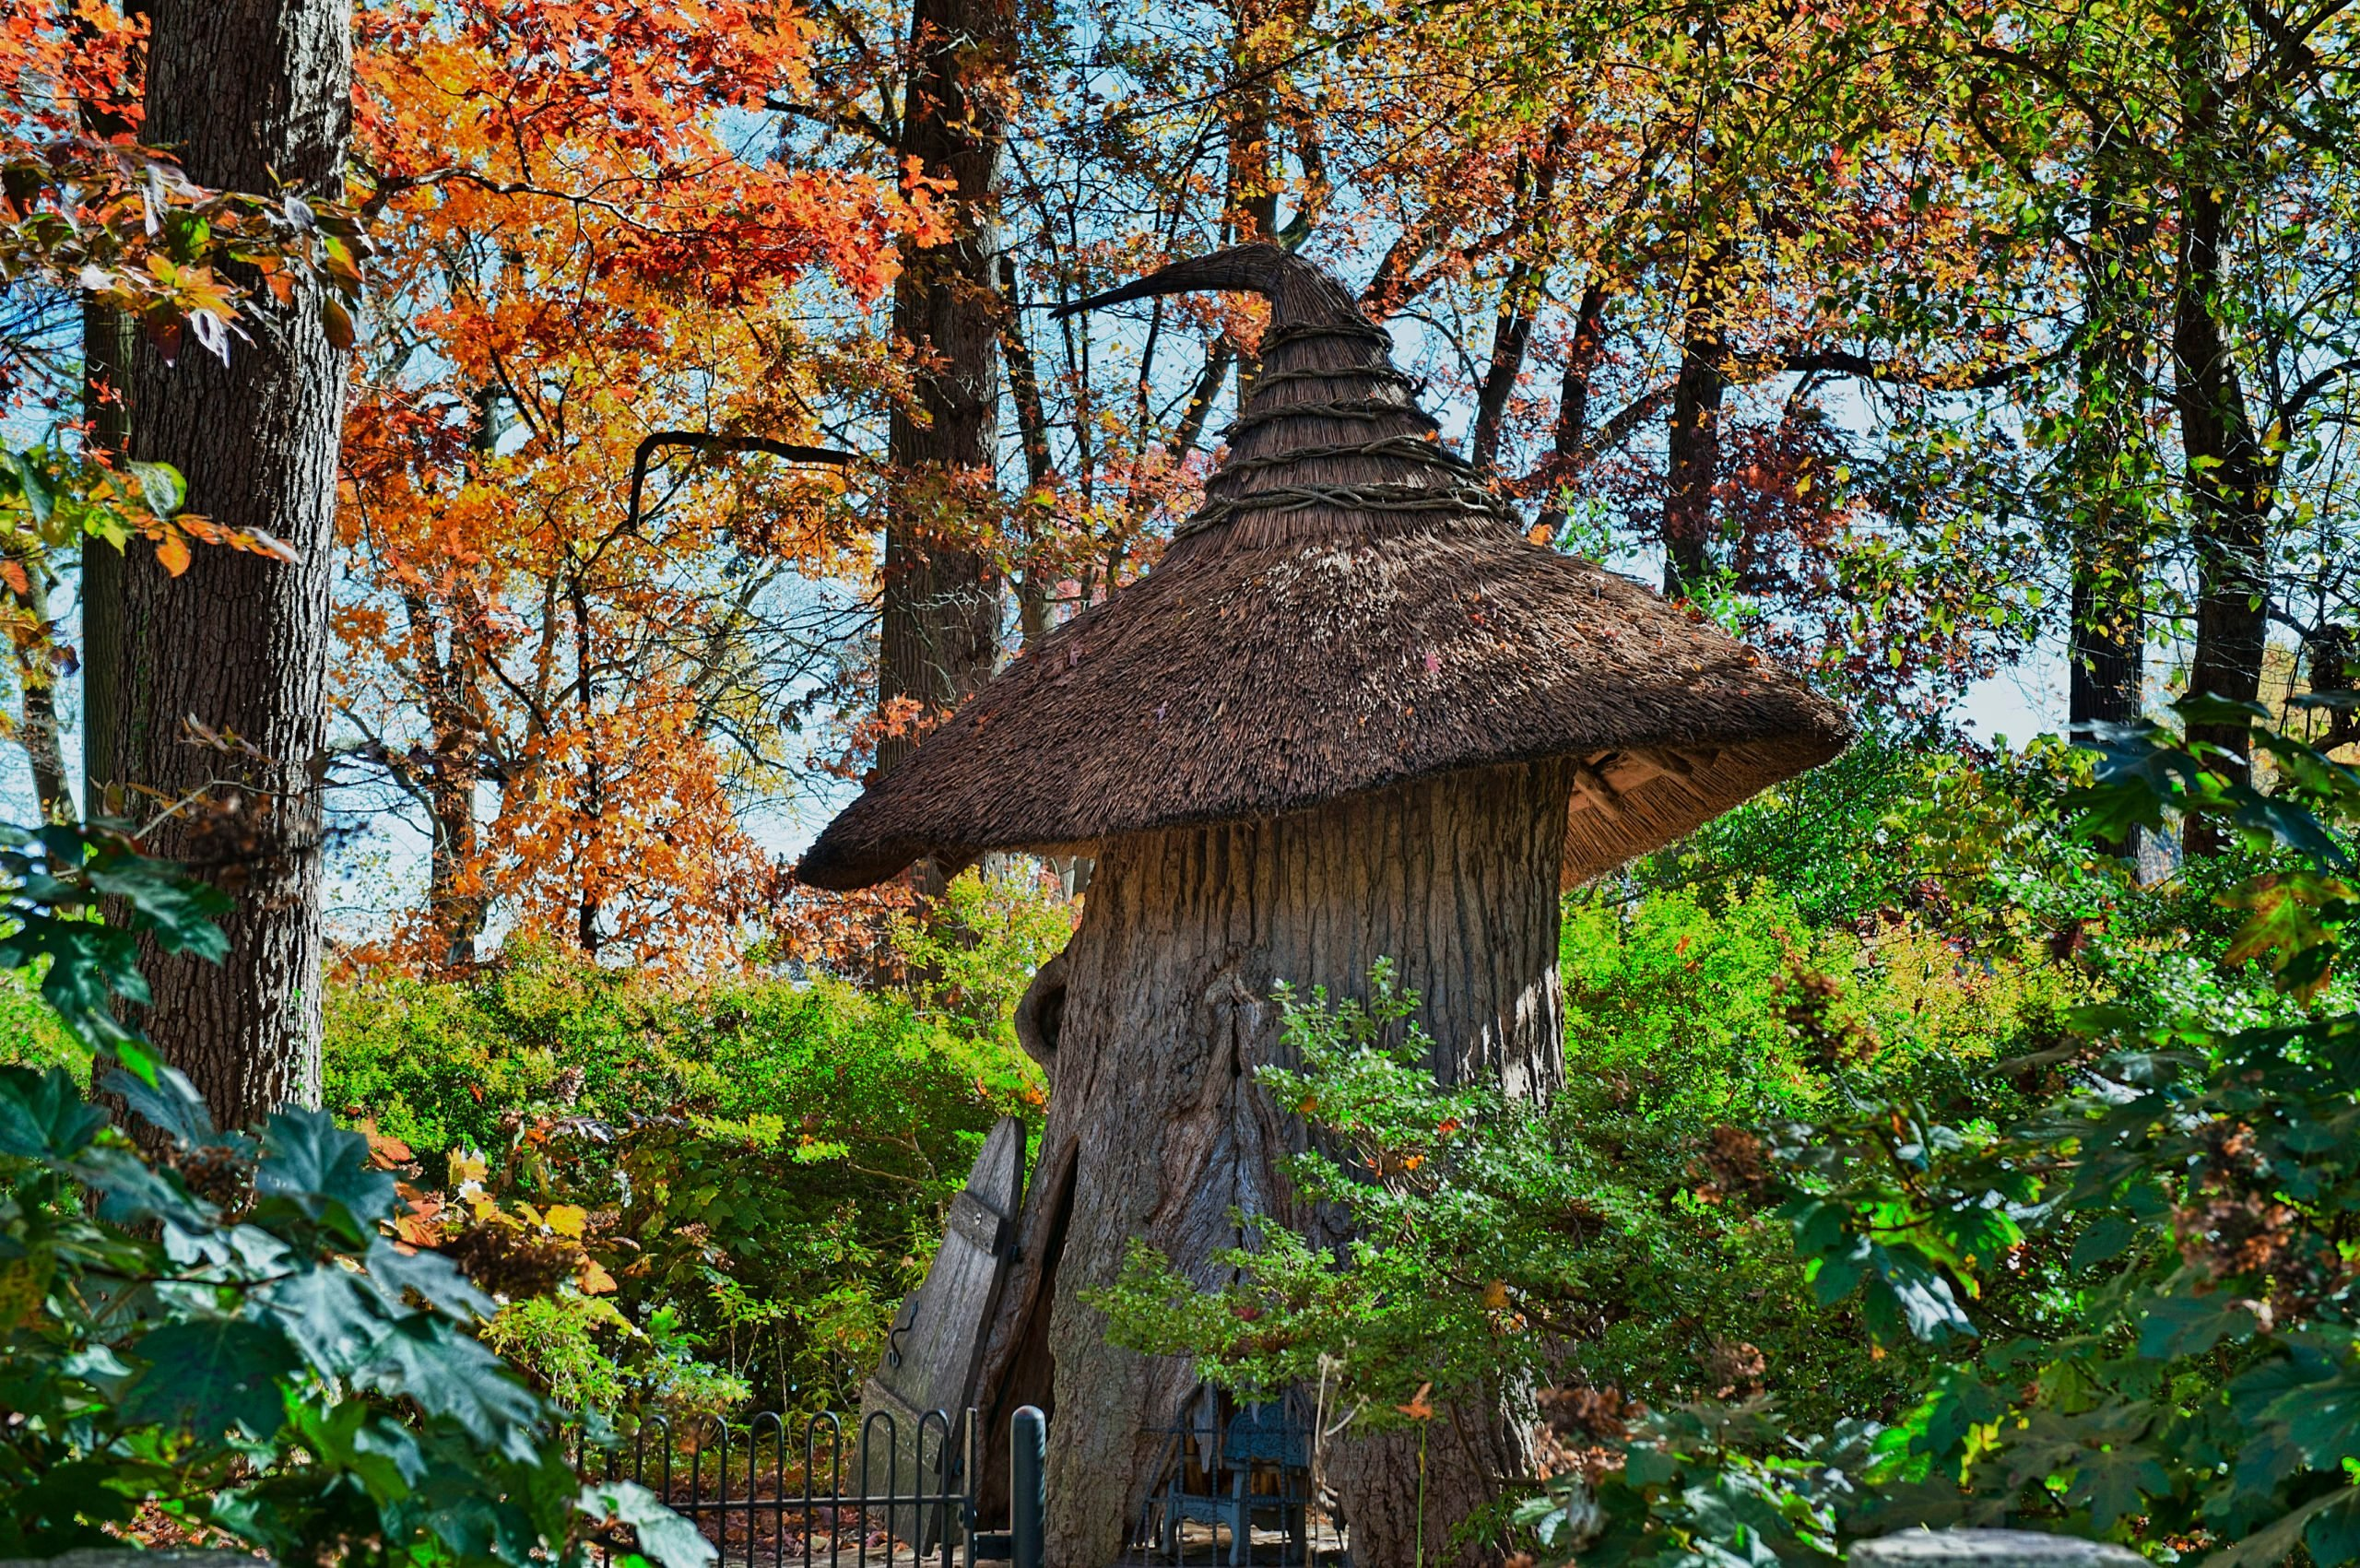 Tulip Tree House in the Enchanted Woods of Winterthur Gardens,